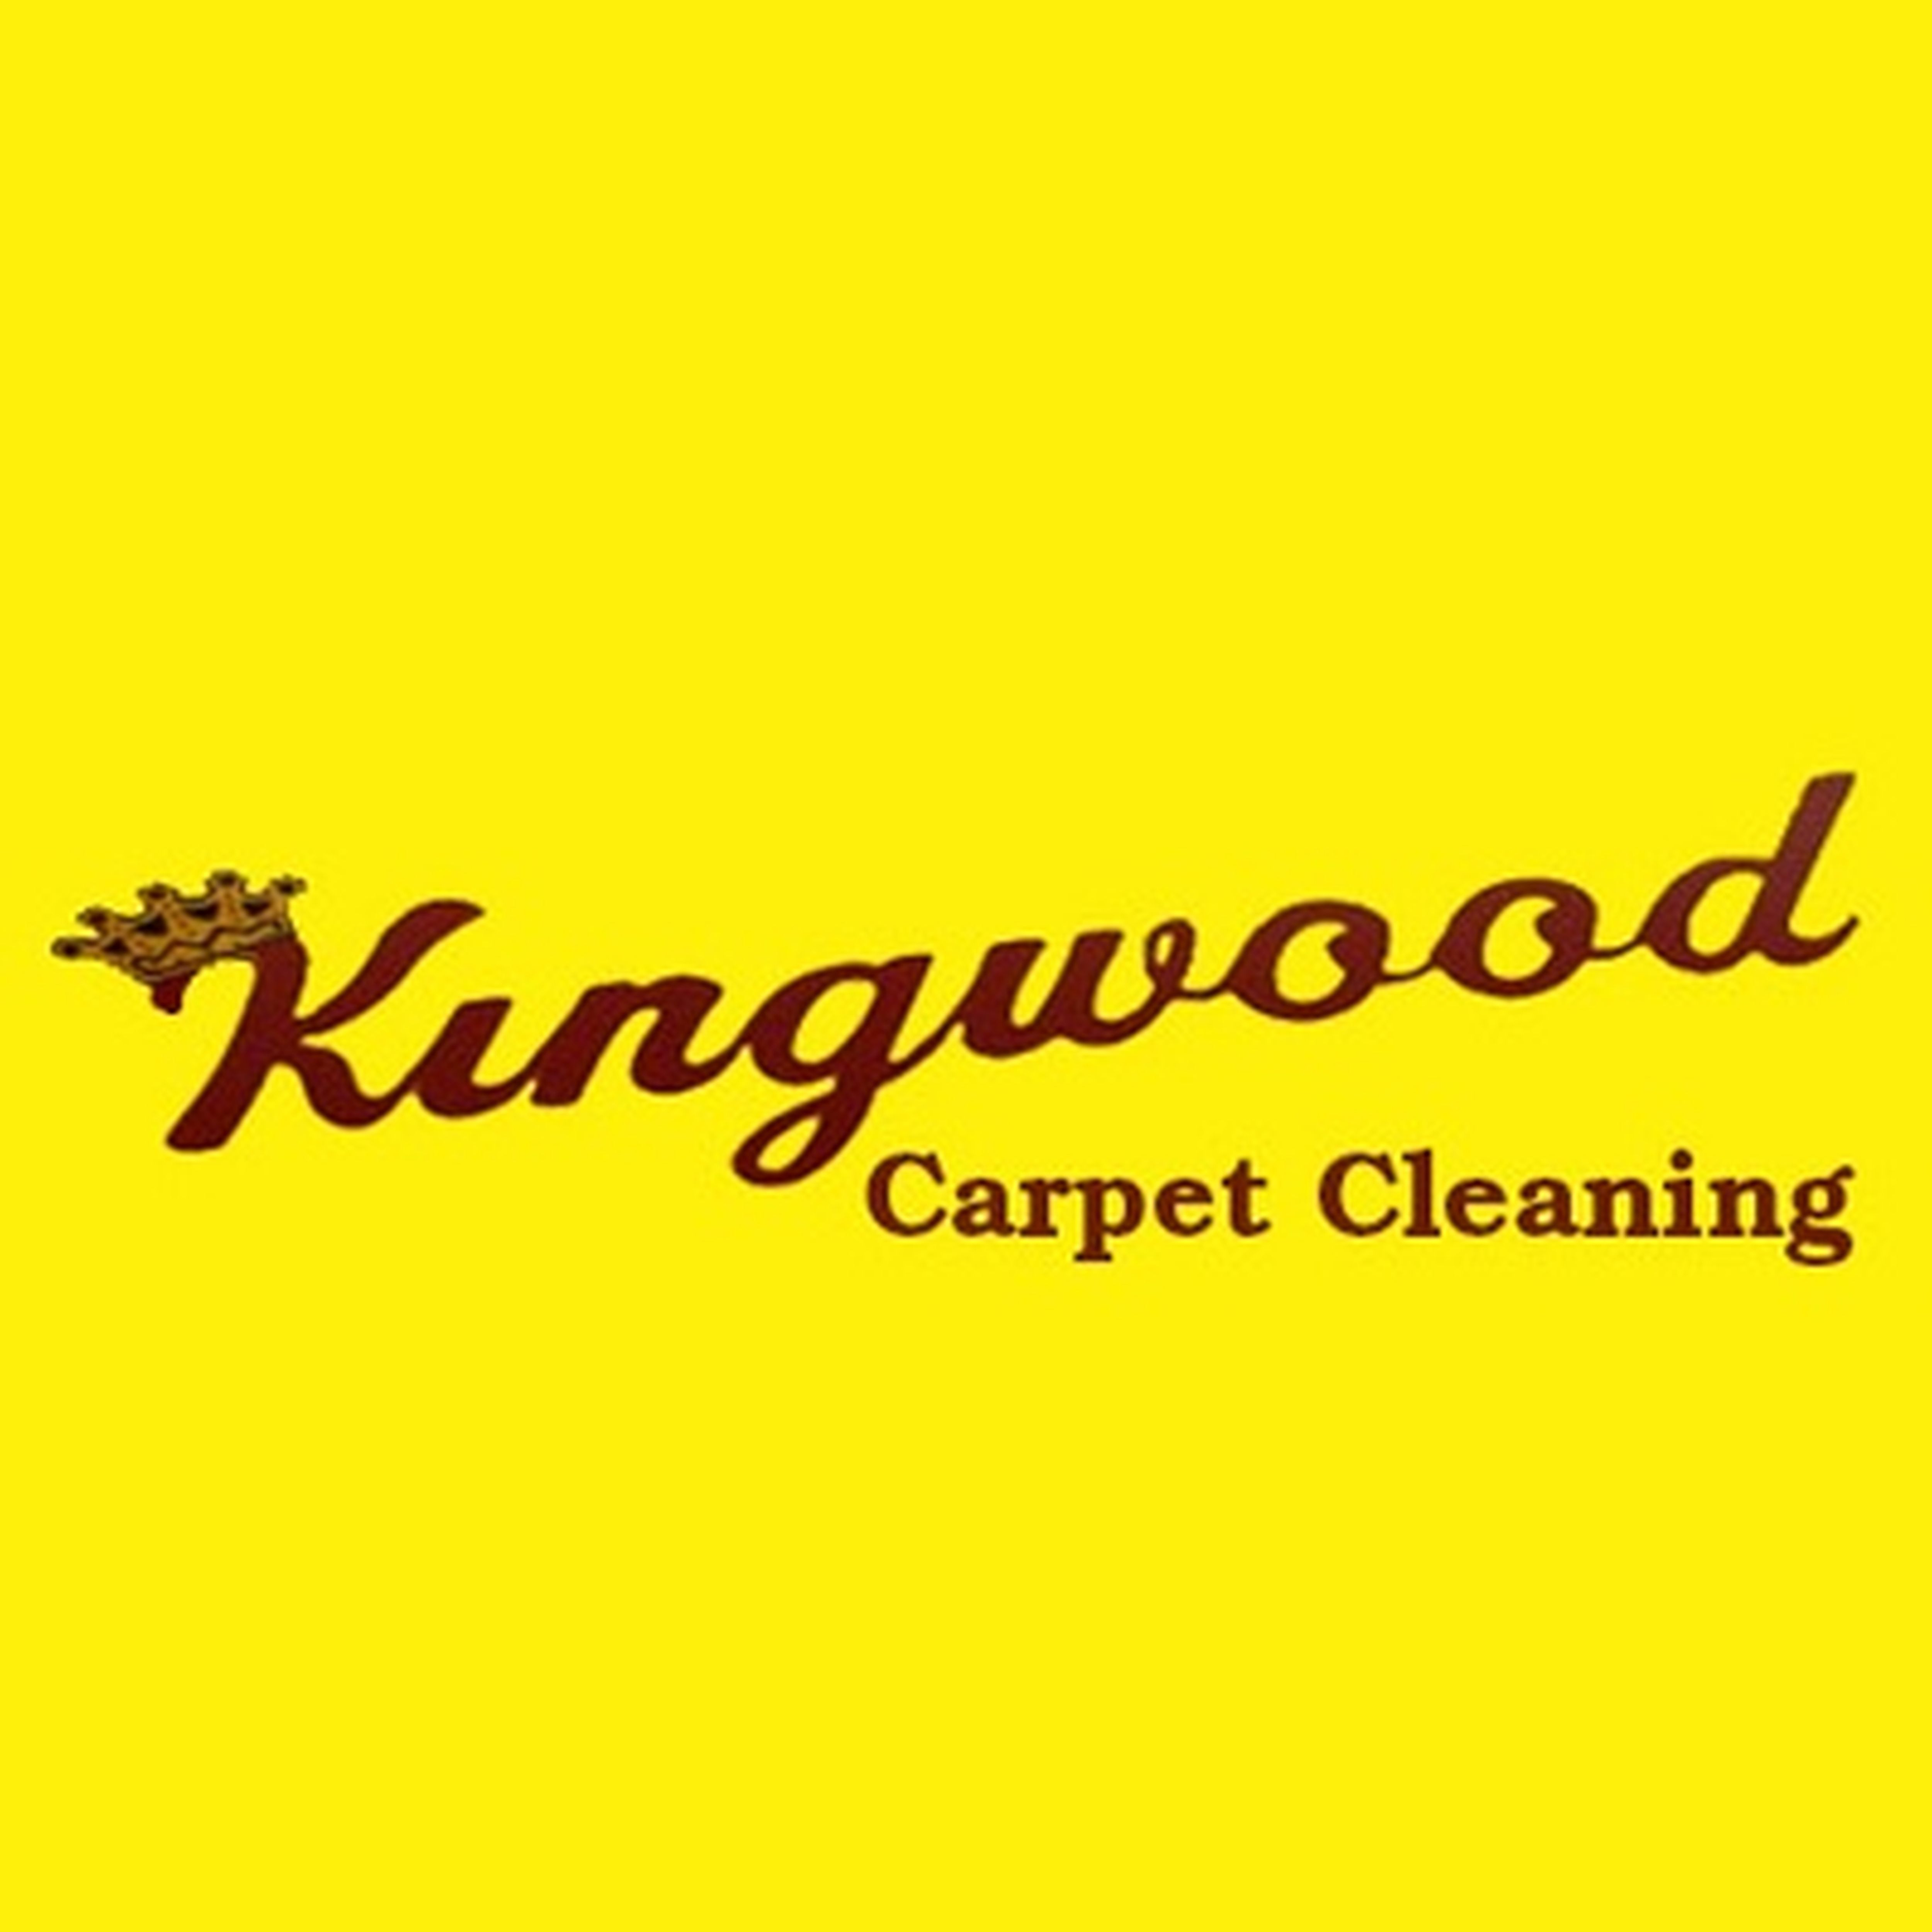 Kingwood Carpet Cleaning 15108 Lee Rd, Humble, TX 77396